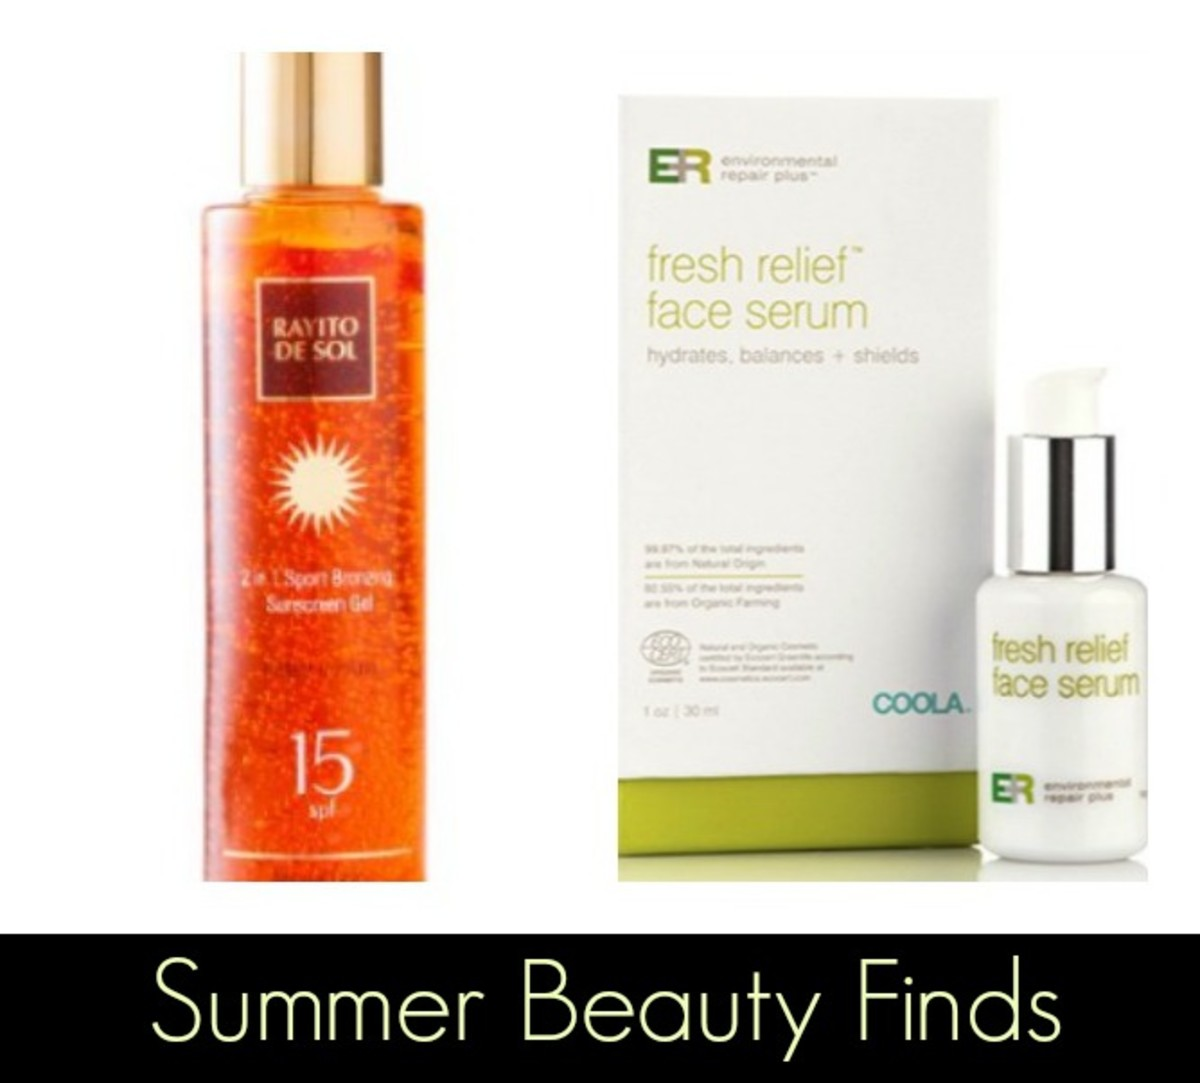 Summer Beauty Finds